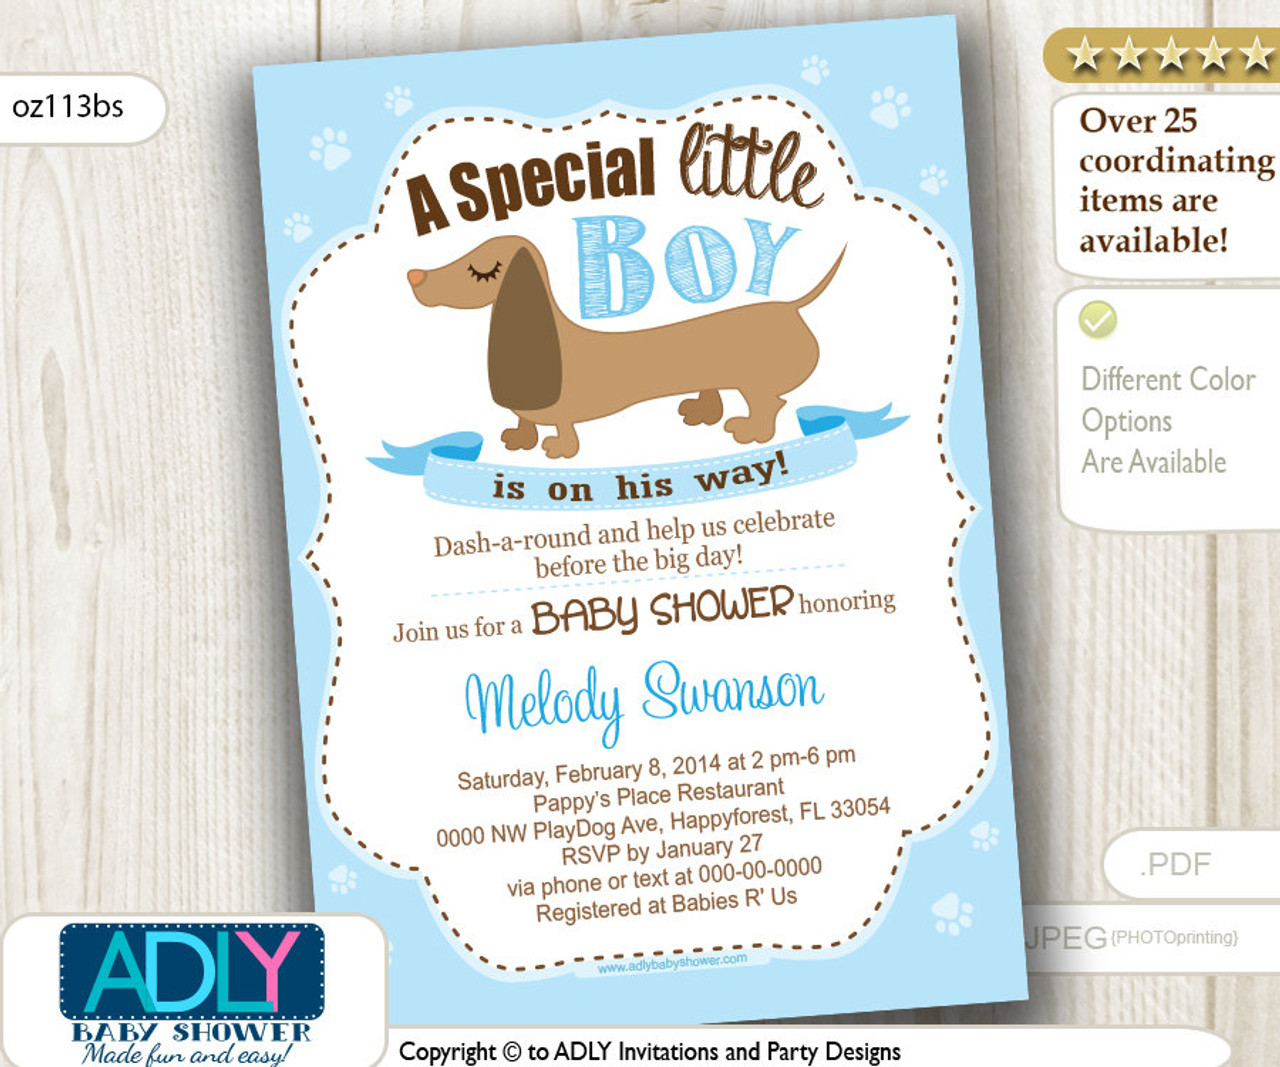 picture regarding Baby Shower Invites Printable titled Boy Sausage Pet Little one Shower Invitation, Printable Dachshund Little one Shower Card for a boy or girl shower.Child Blue, do it yourself,brown canine-oz113bs